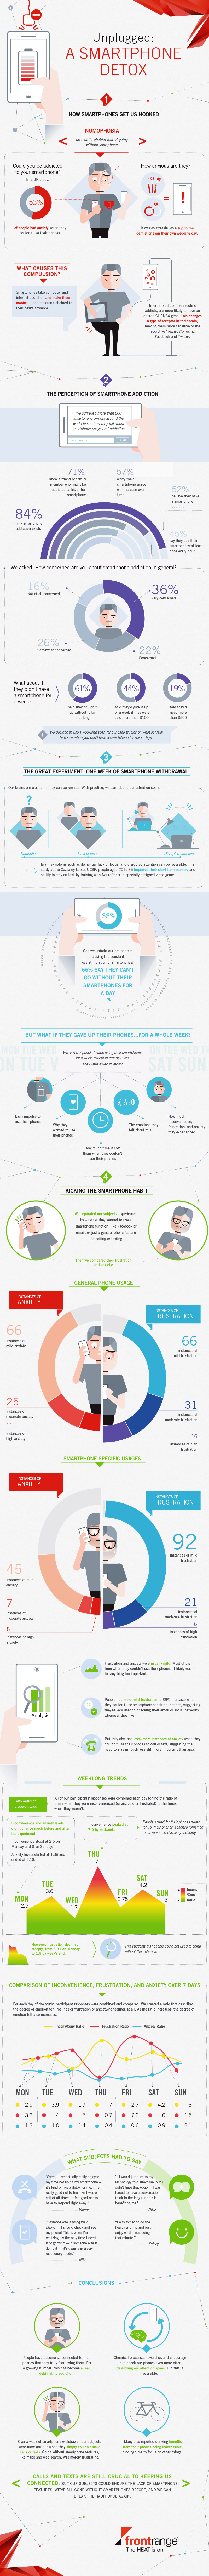 1389376992-guide-surviving-without-smartphone-infographic